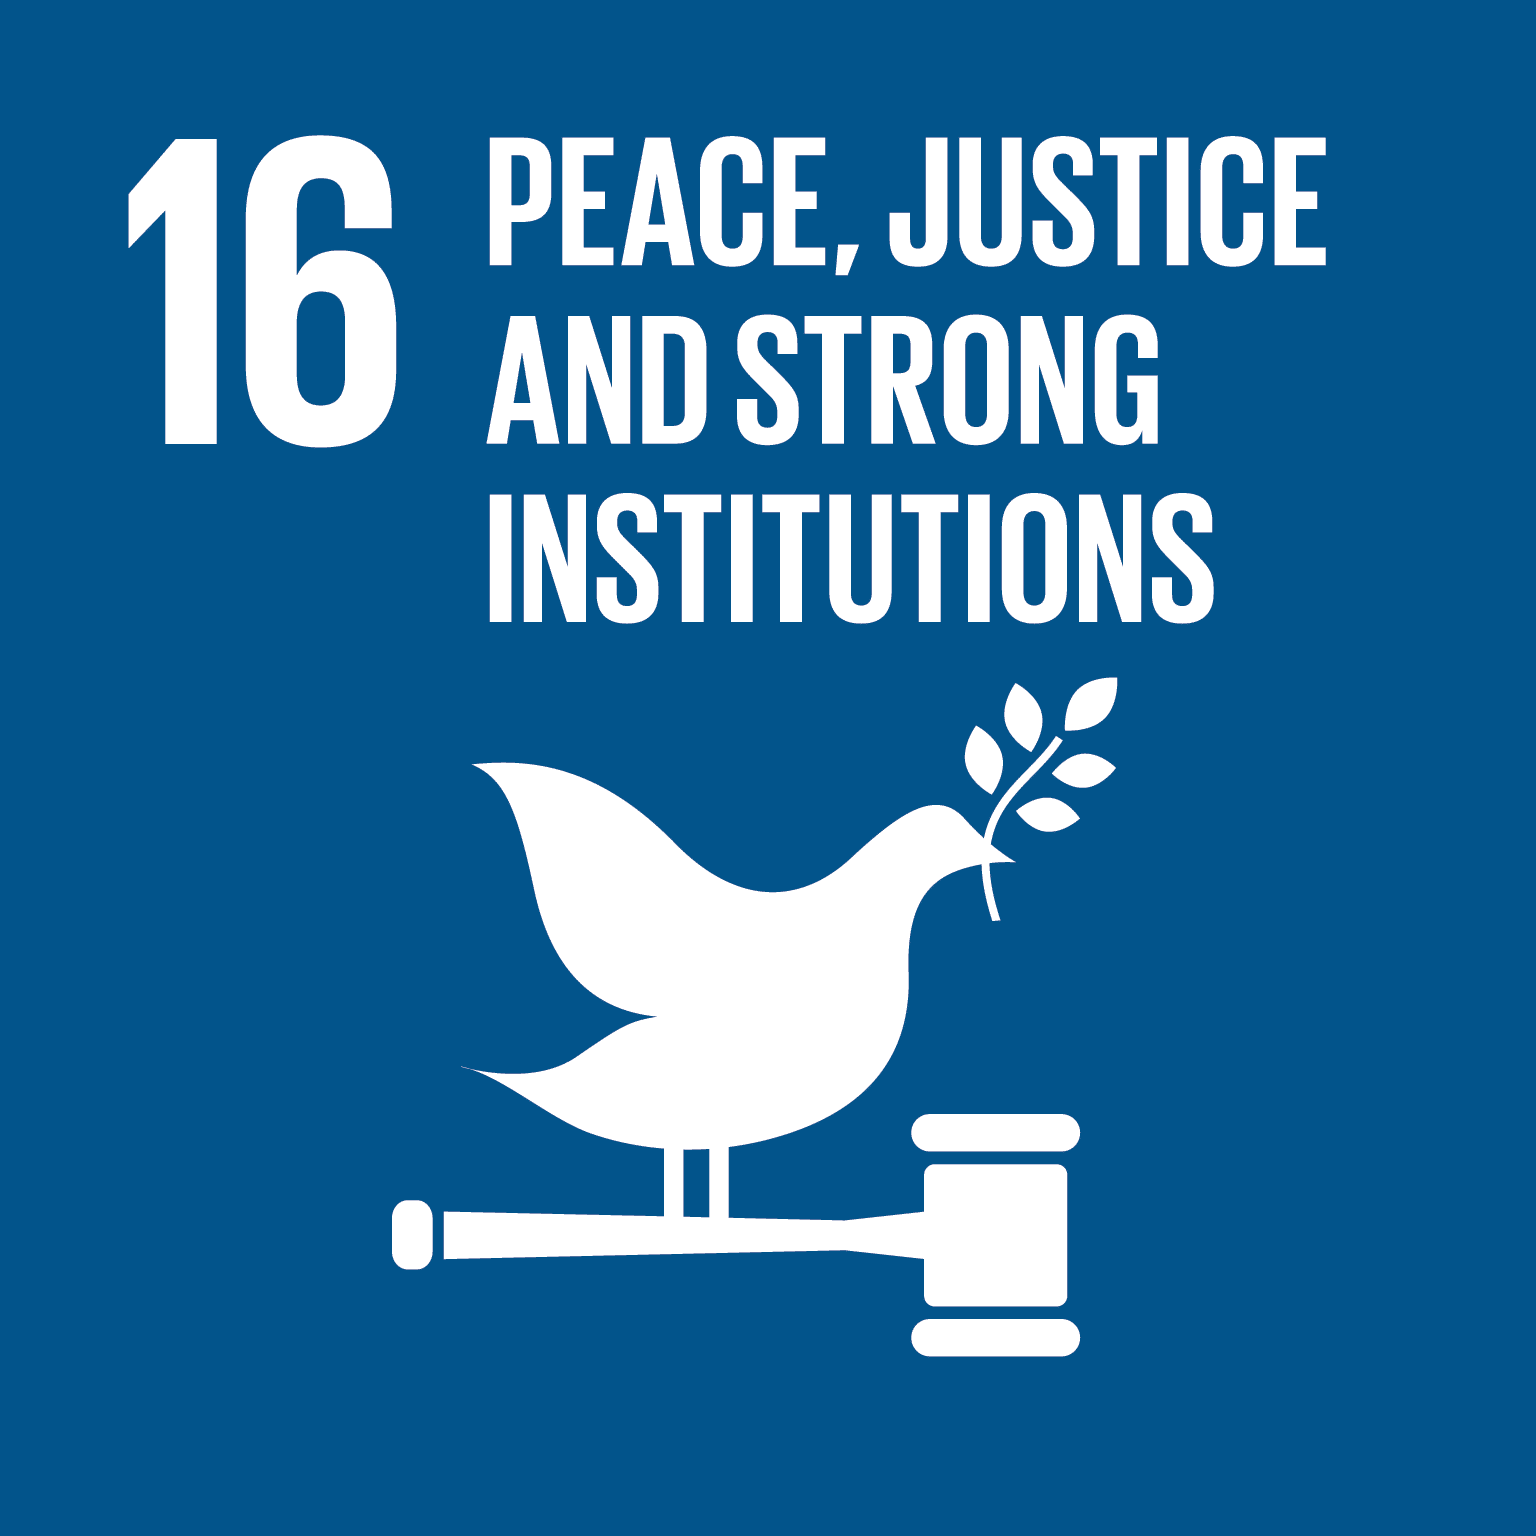 SDG 16 - Peace, justice & strong institutions